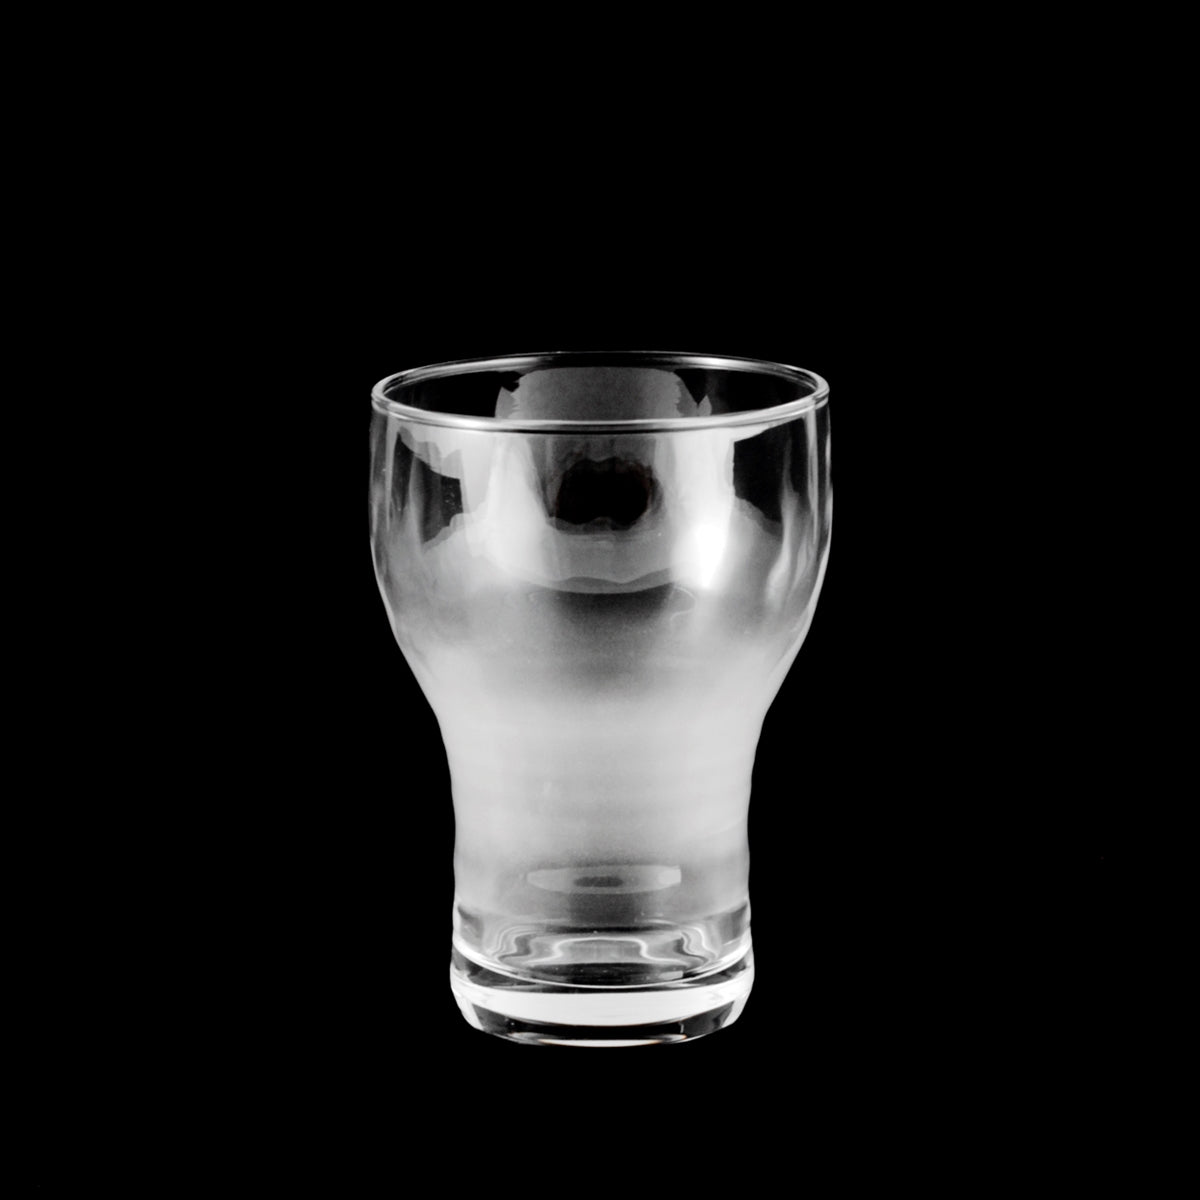 Frosted Beer Glass Tumbler 10.5 fl oz